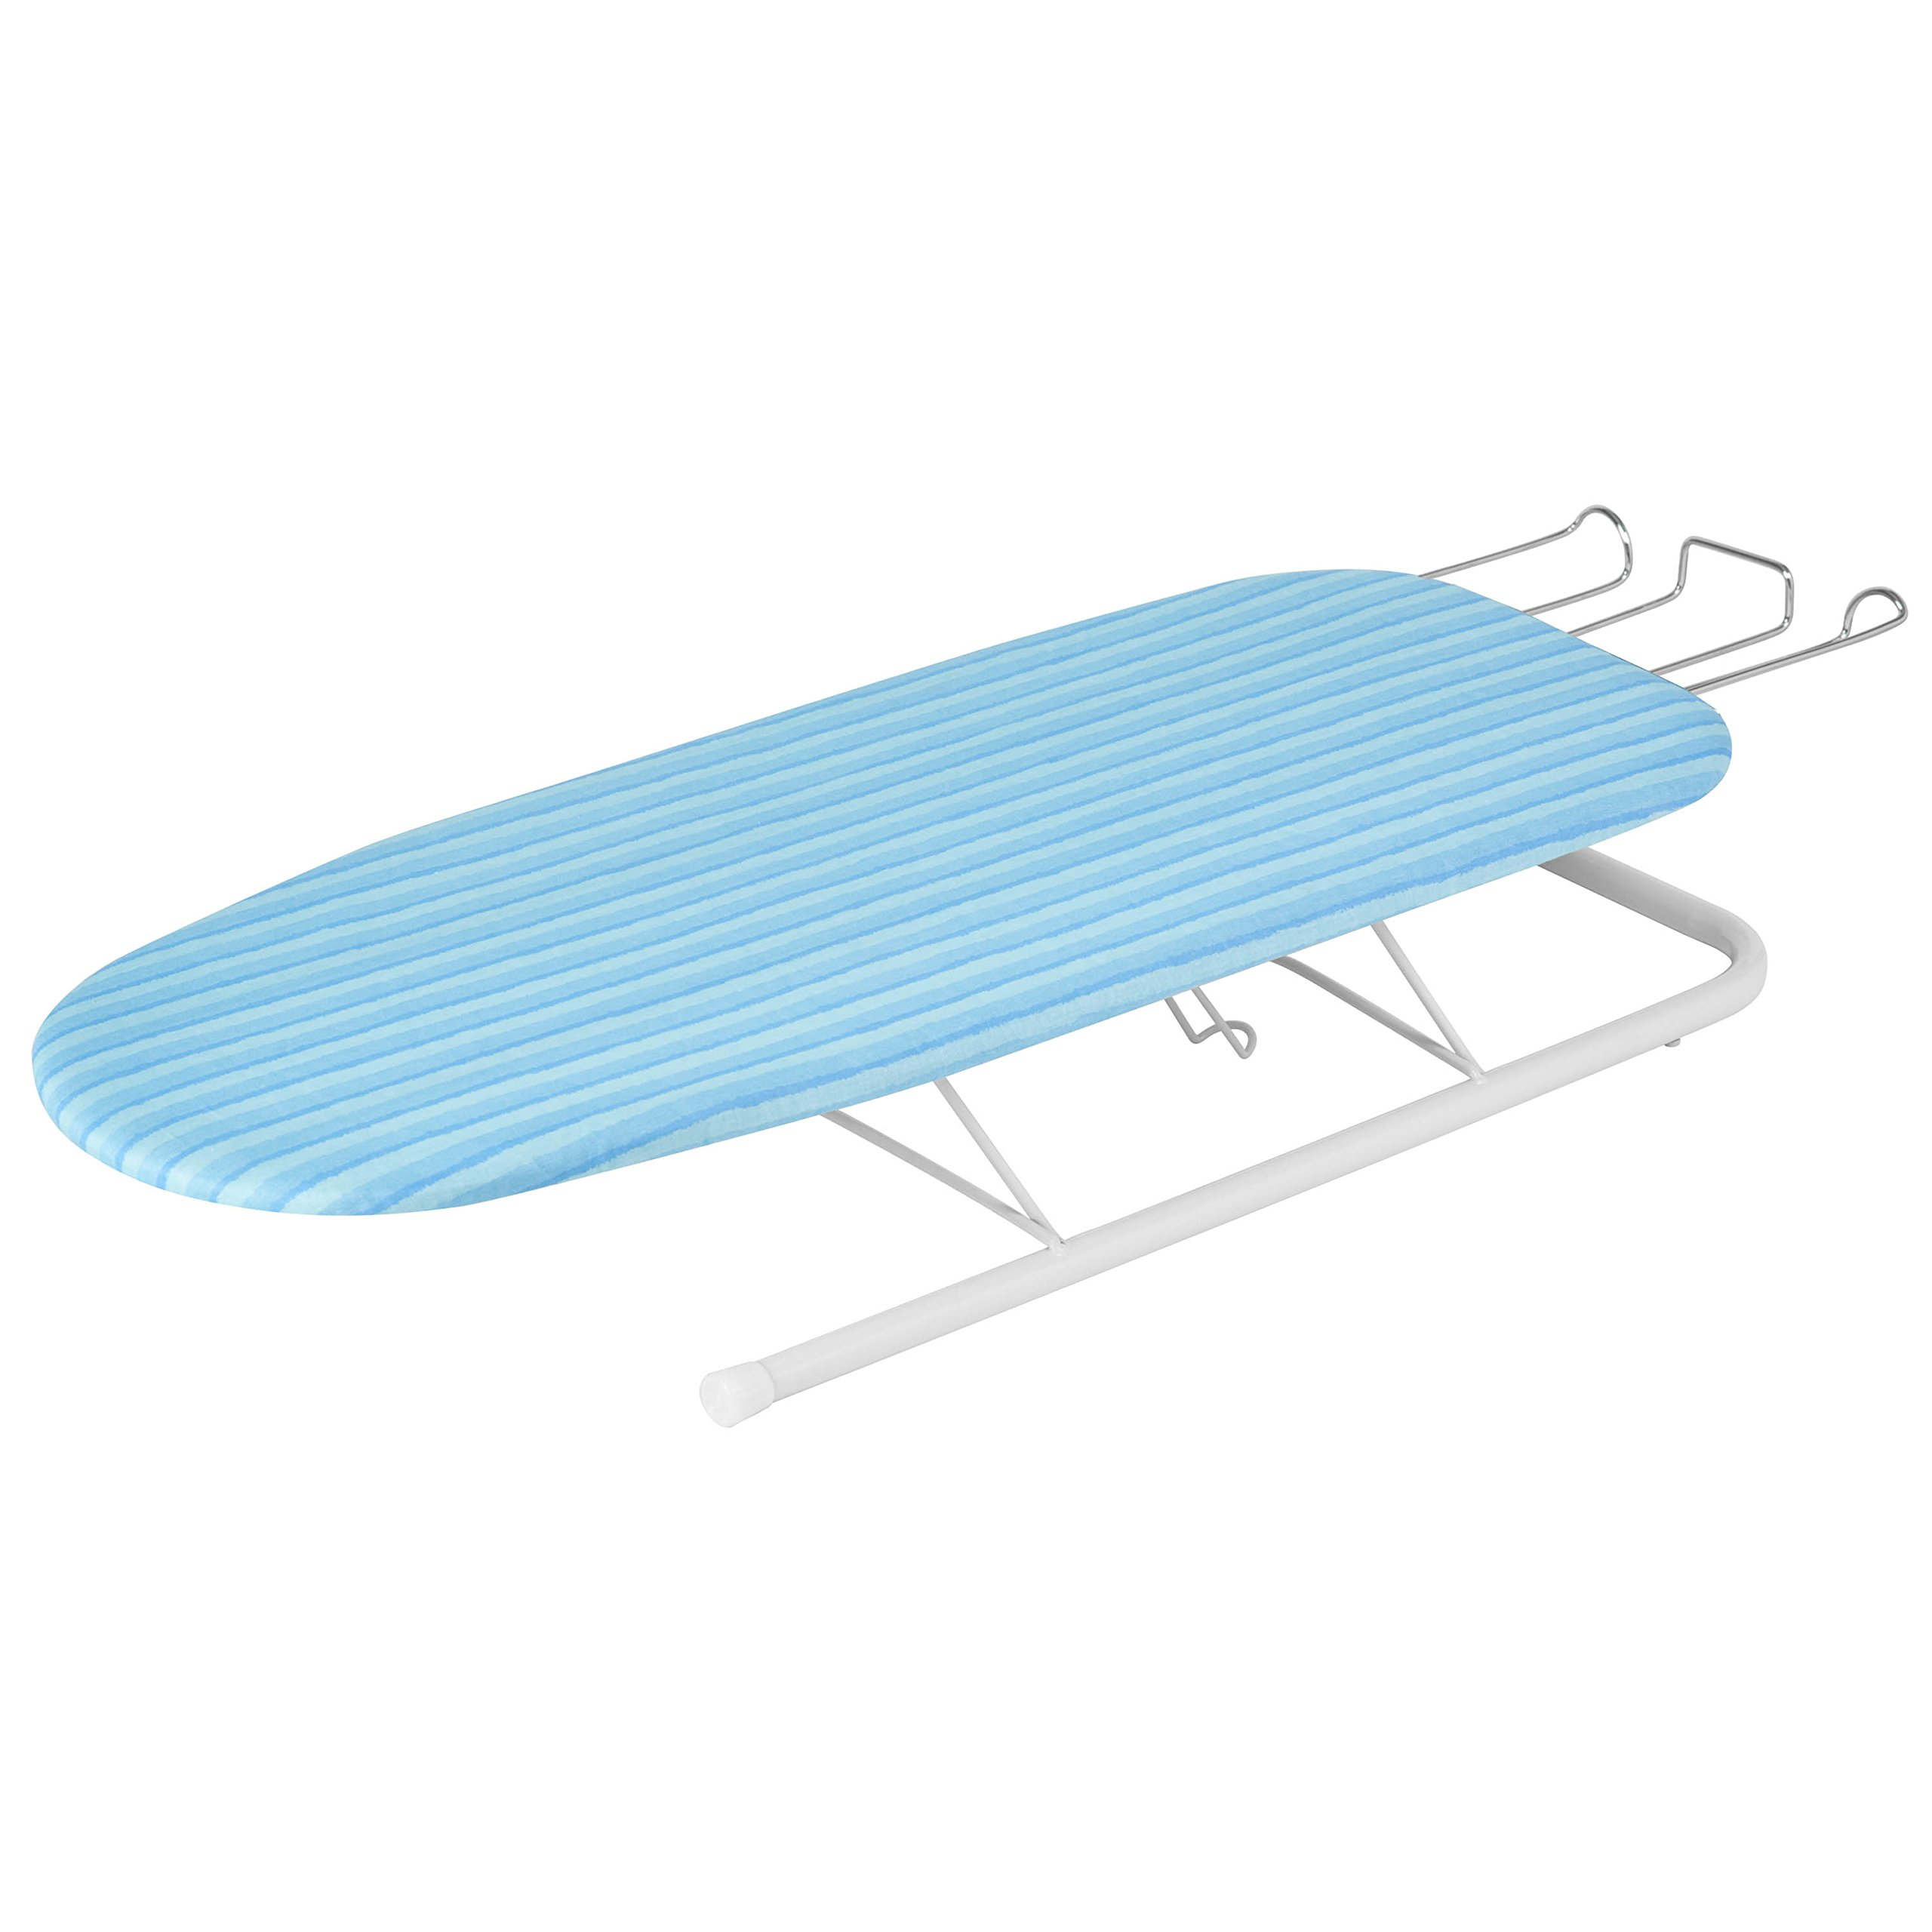 Honey-Can-Do Tabletop Ironing Board with Retractable Iron Rest by Honey-Can-Do